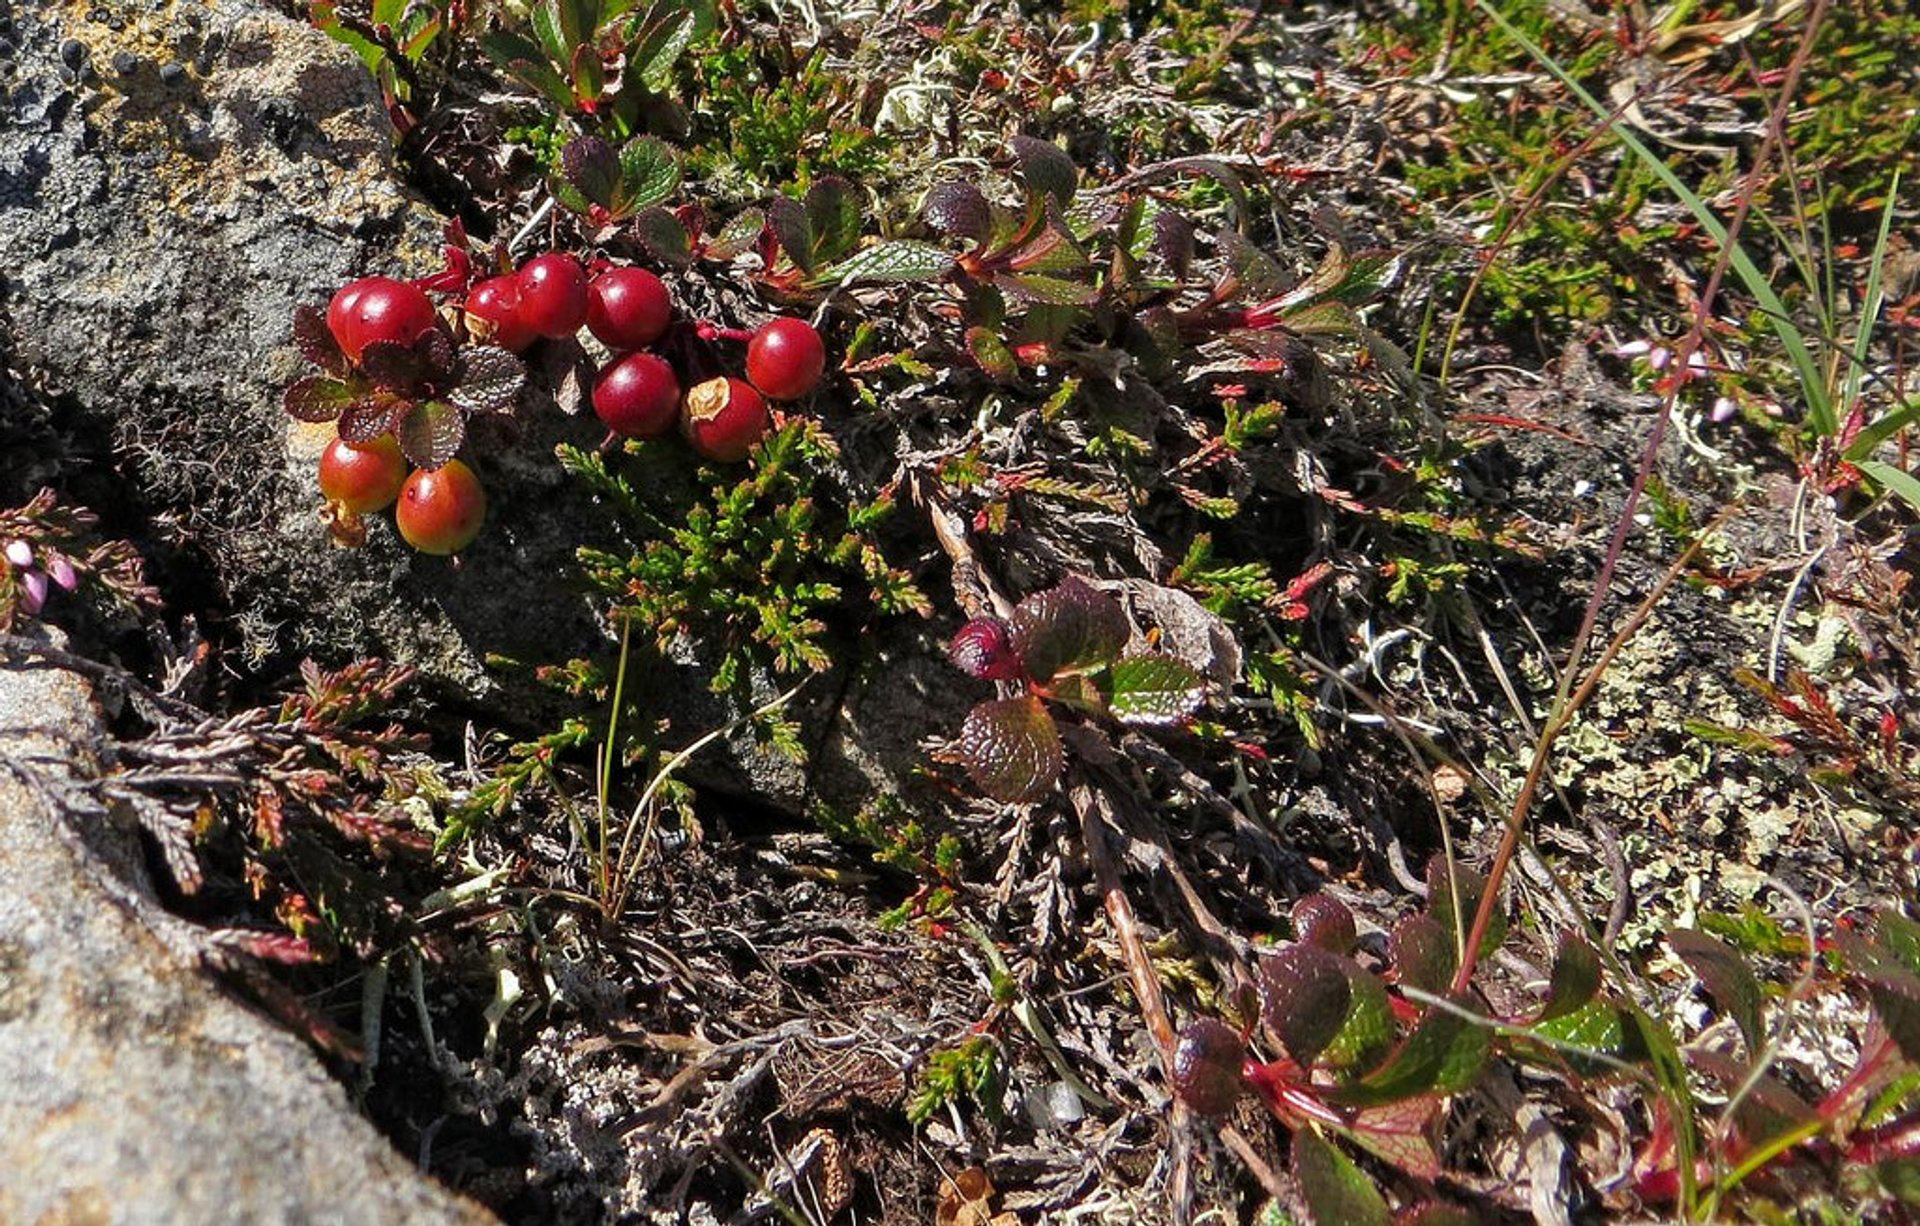 Bearberry is edible, but it contains acids that can give nausea, vomiting and fever if too many is eaten 2020